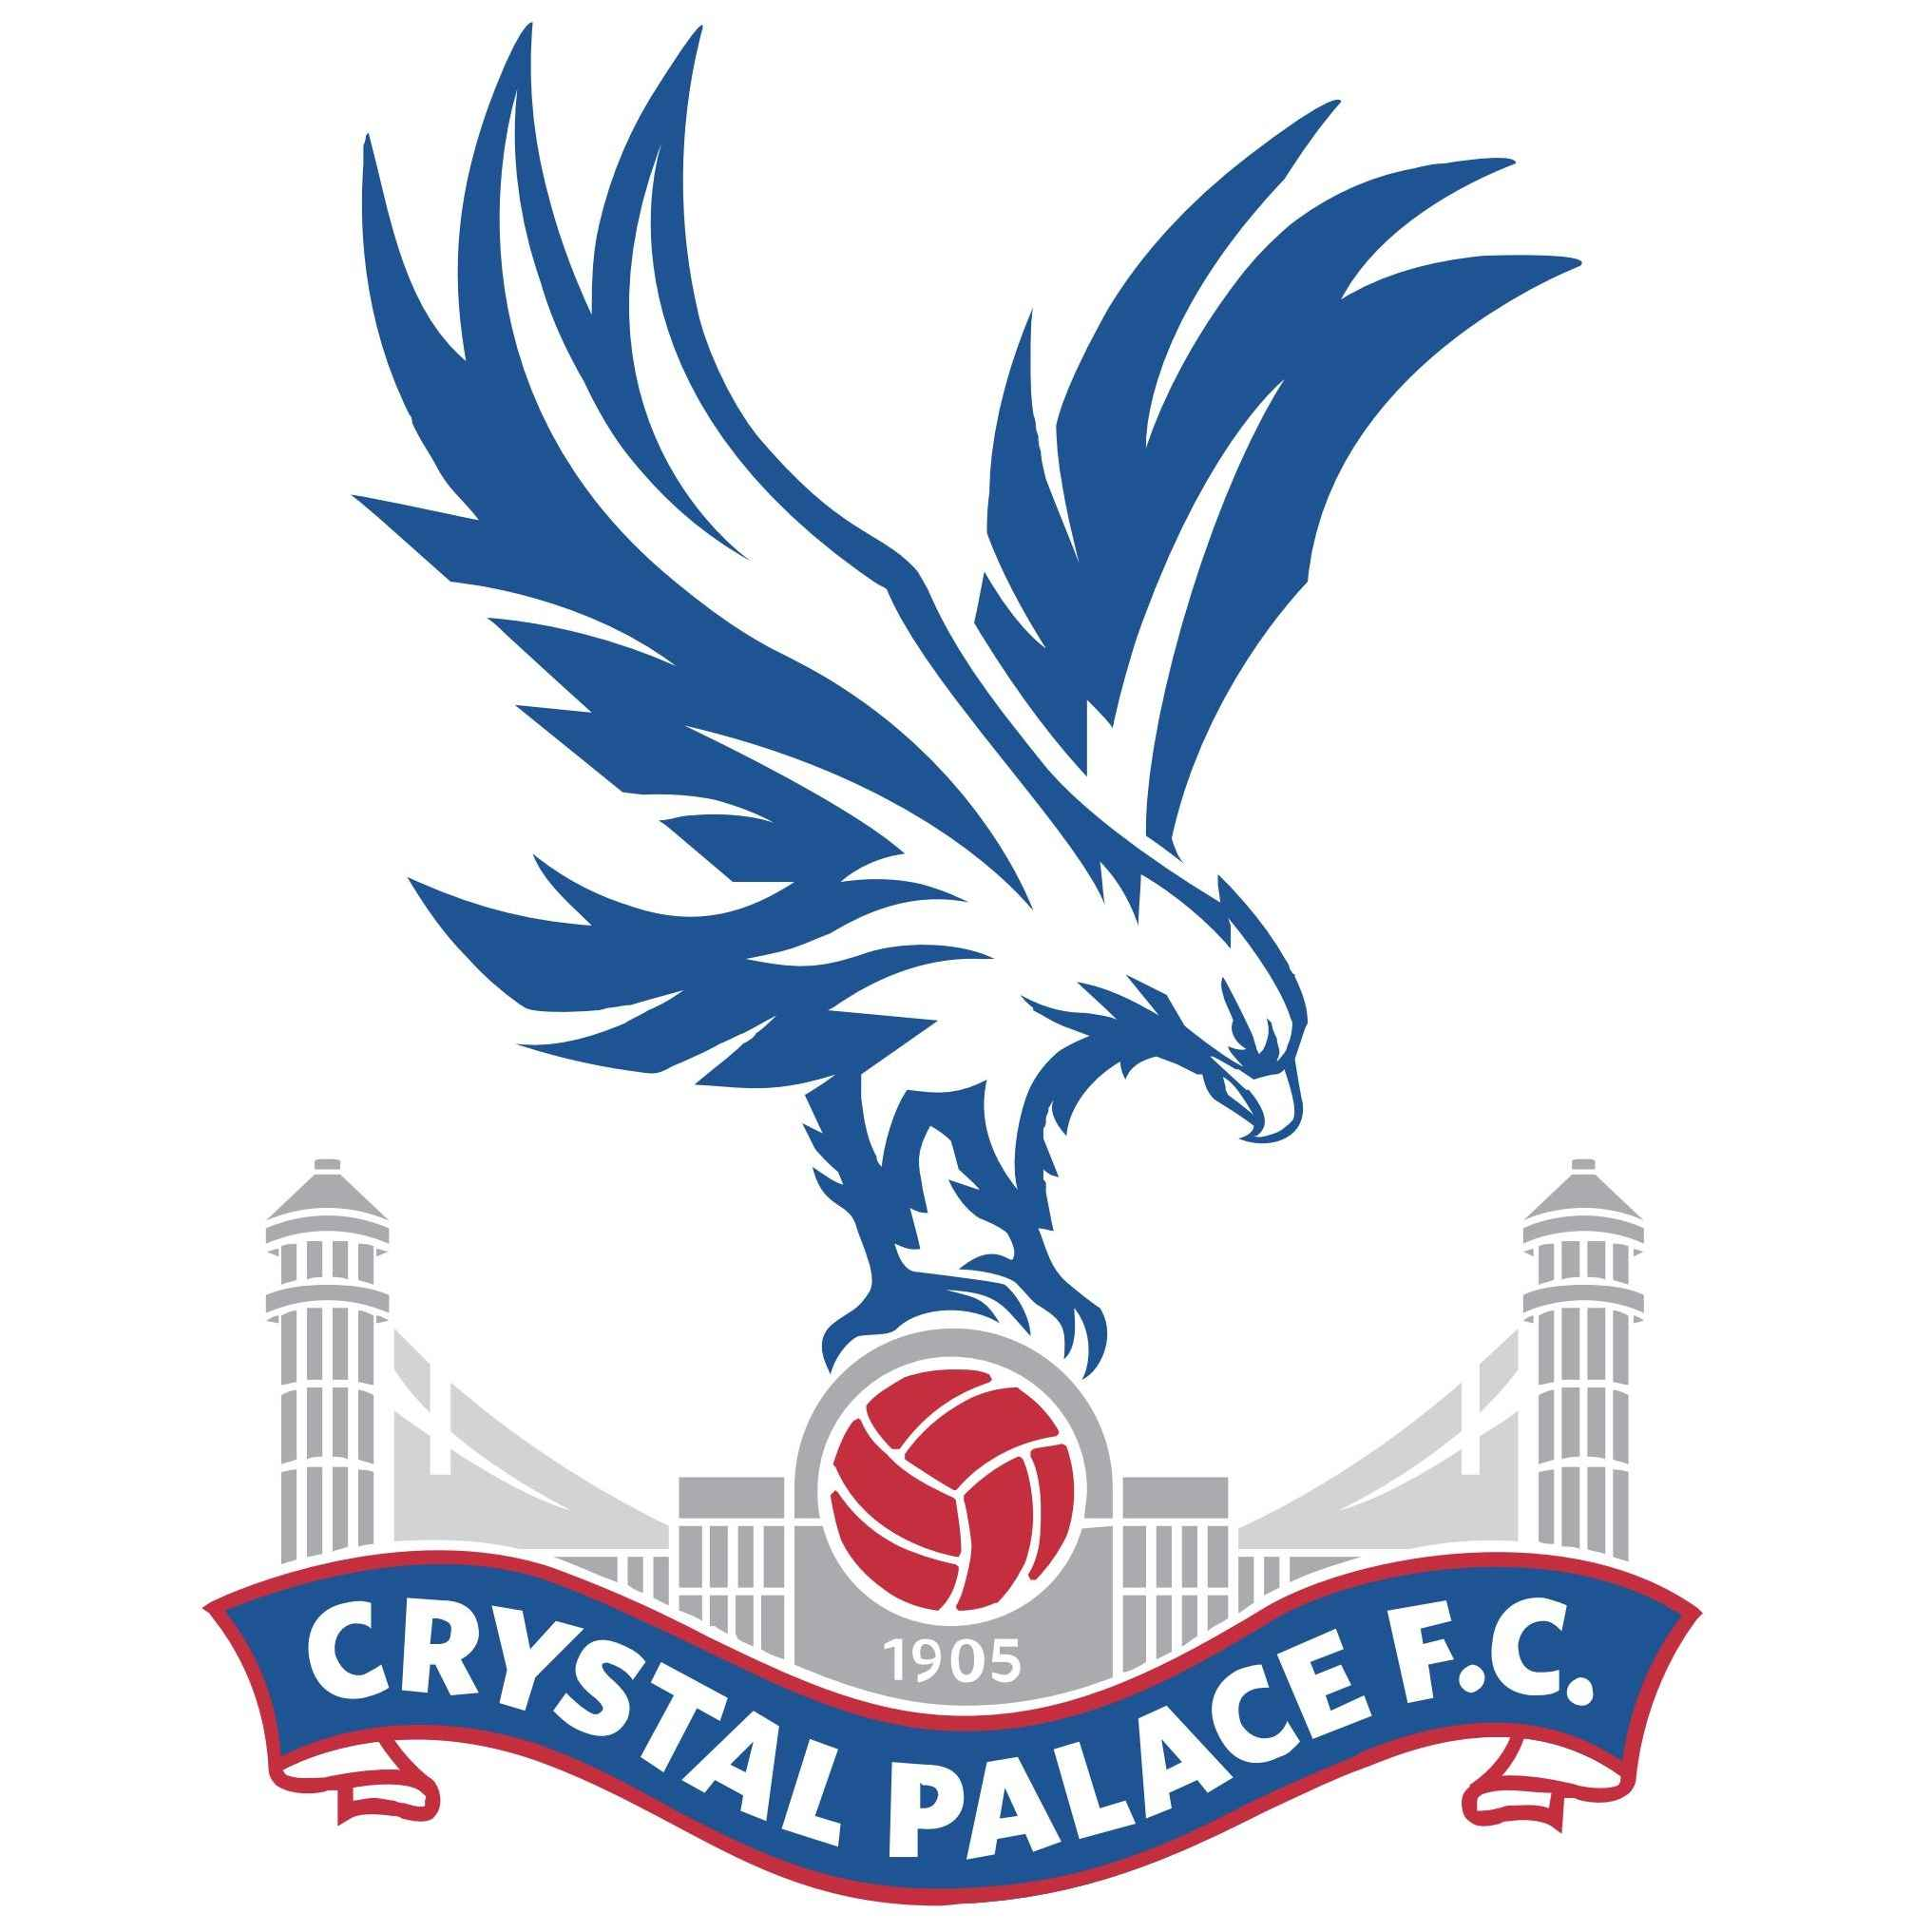 Crystal Palace Football Club Logo [EPS] Vector EPS Free Download, Logo, Icons, Brand Emblems